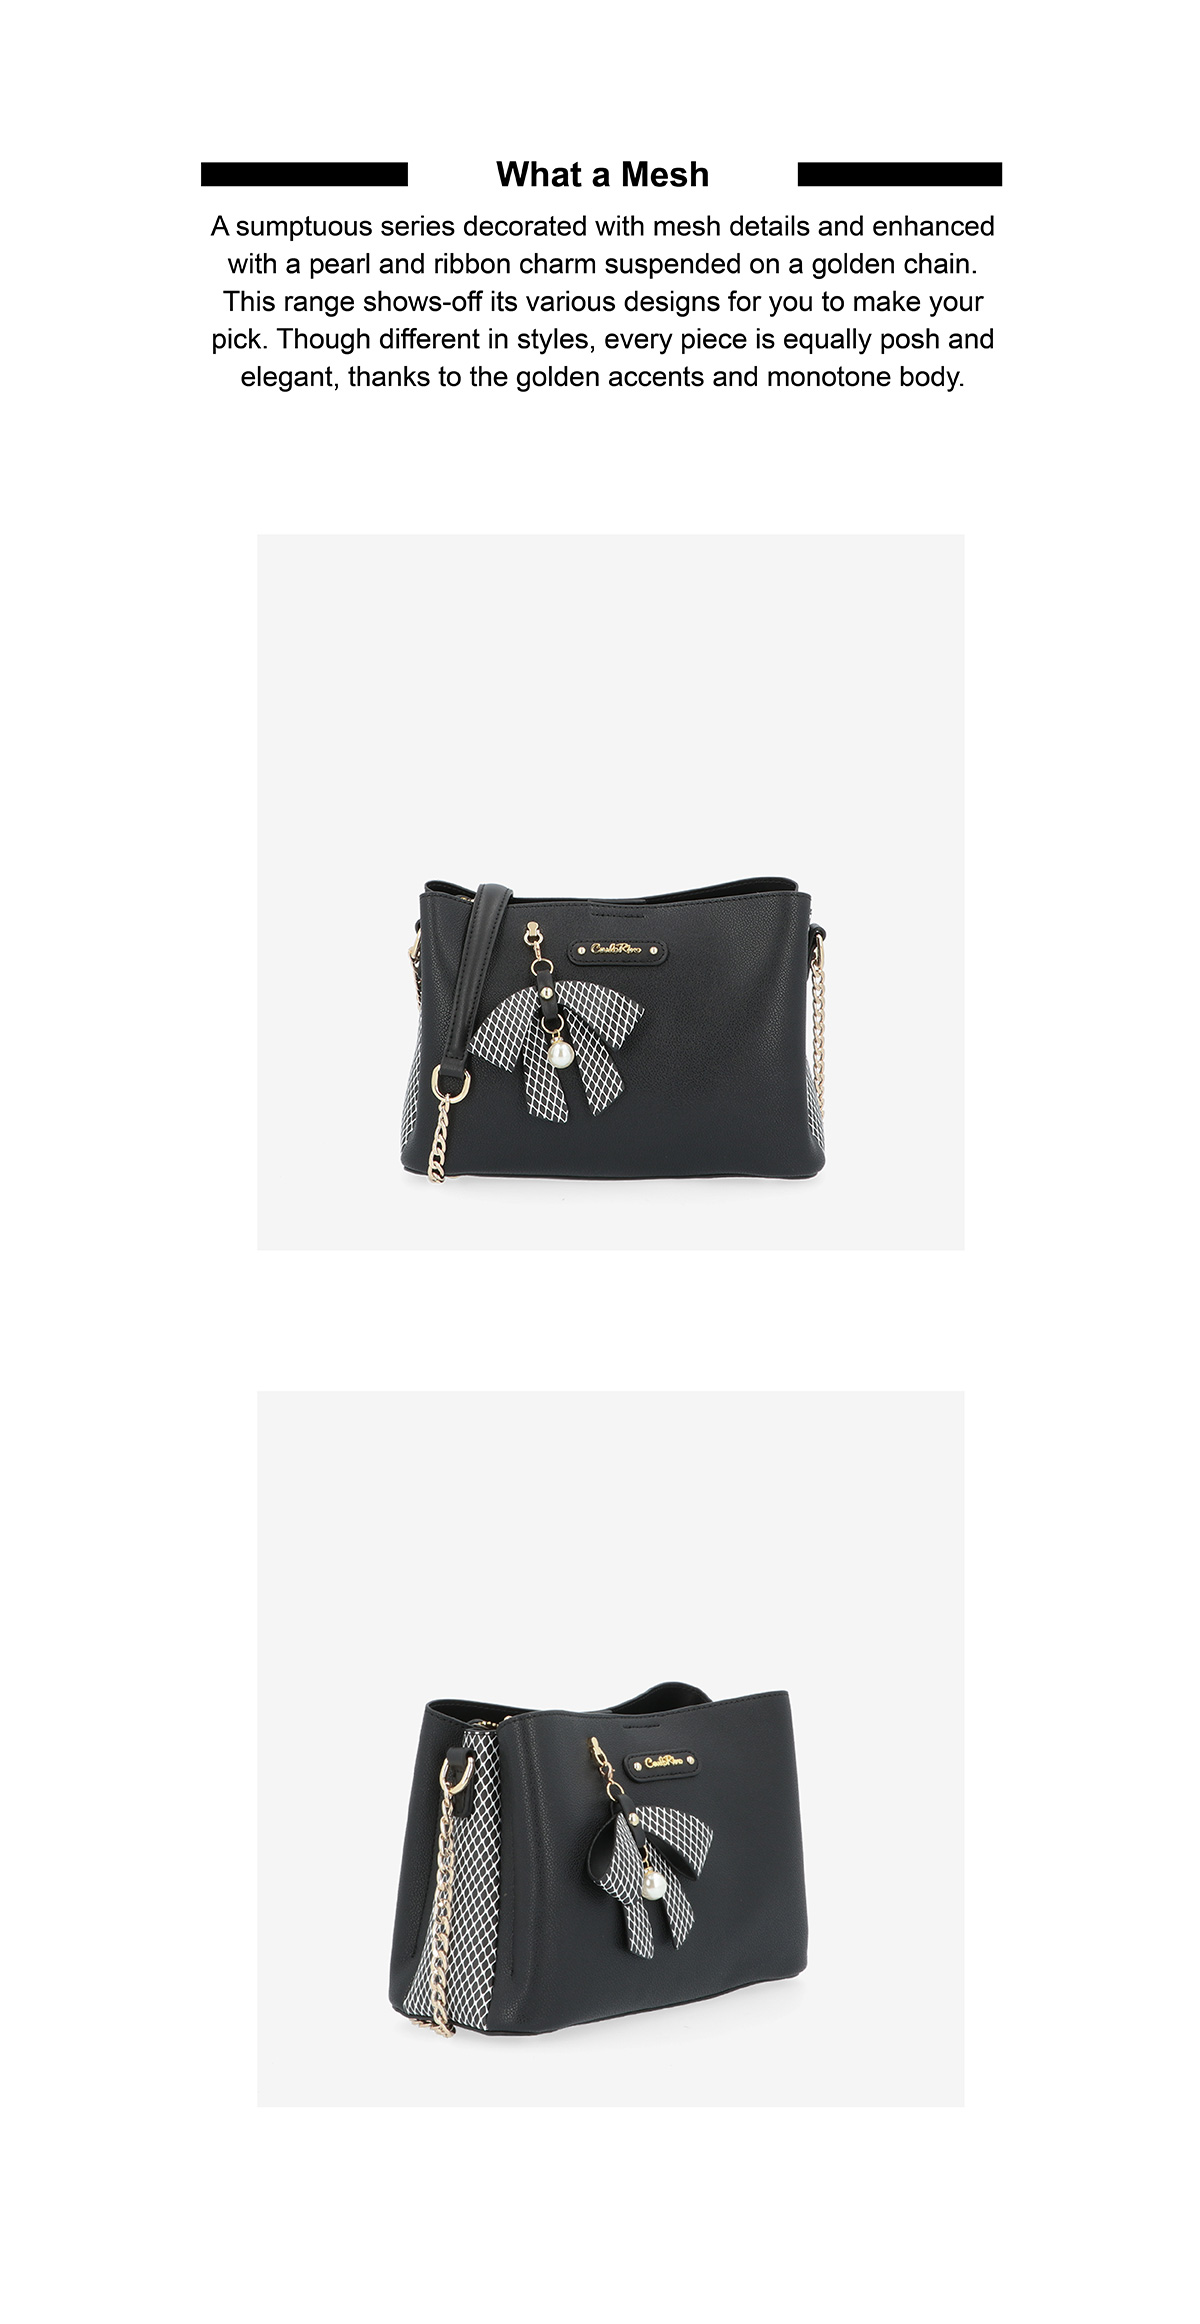 0304924G 001 08 02 - What a Mesh Chain Link Cross Body